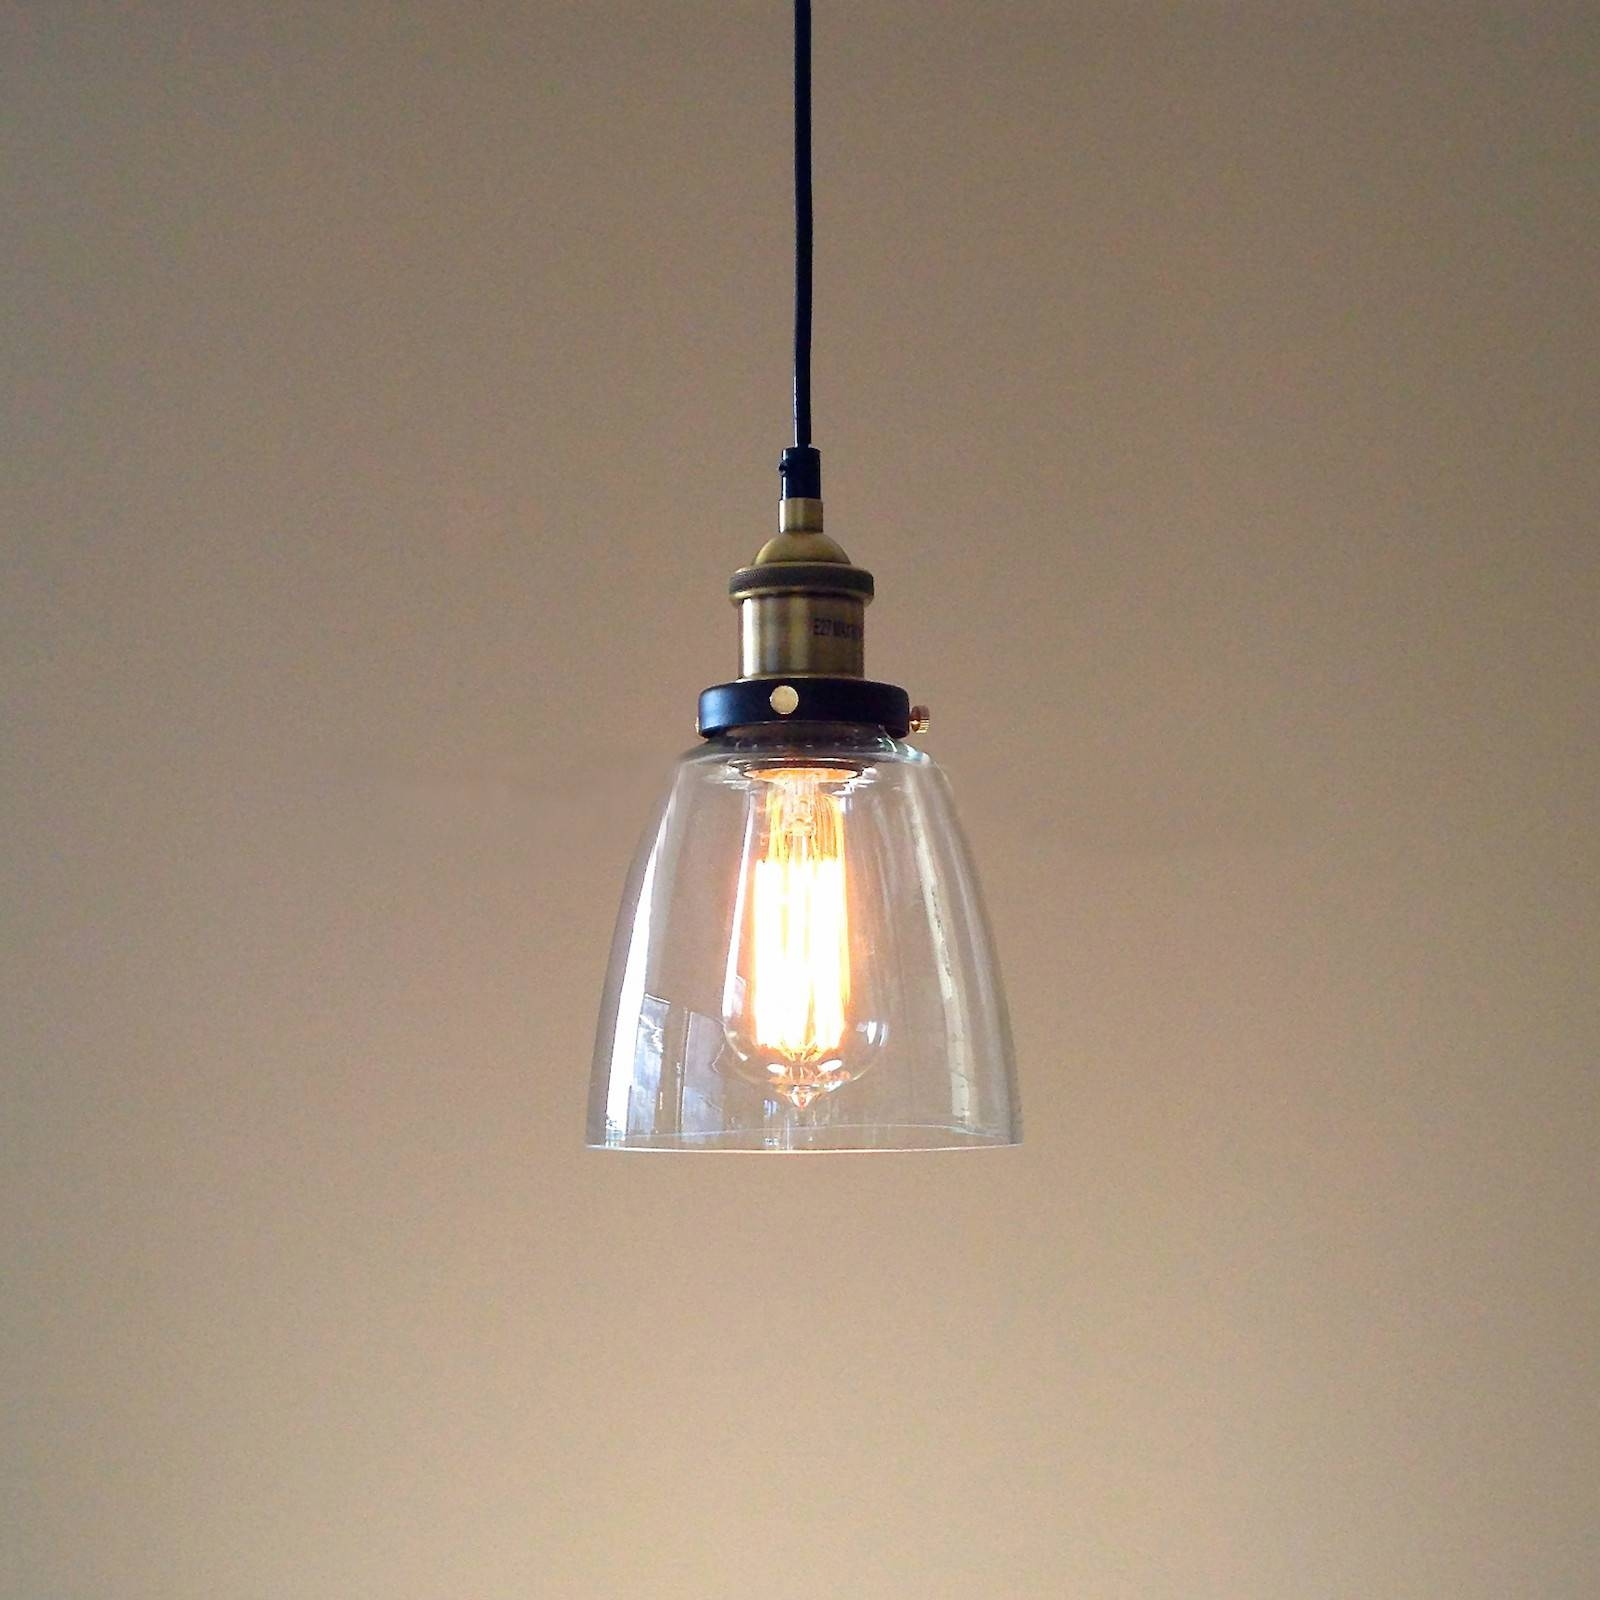 15 ideas of pendant lights melbourne